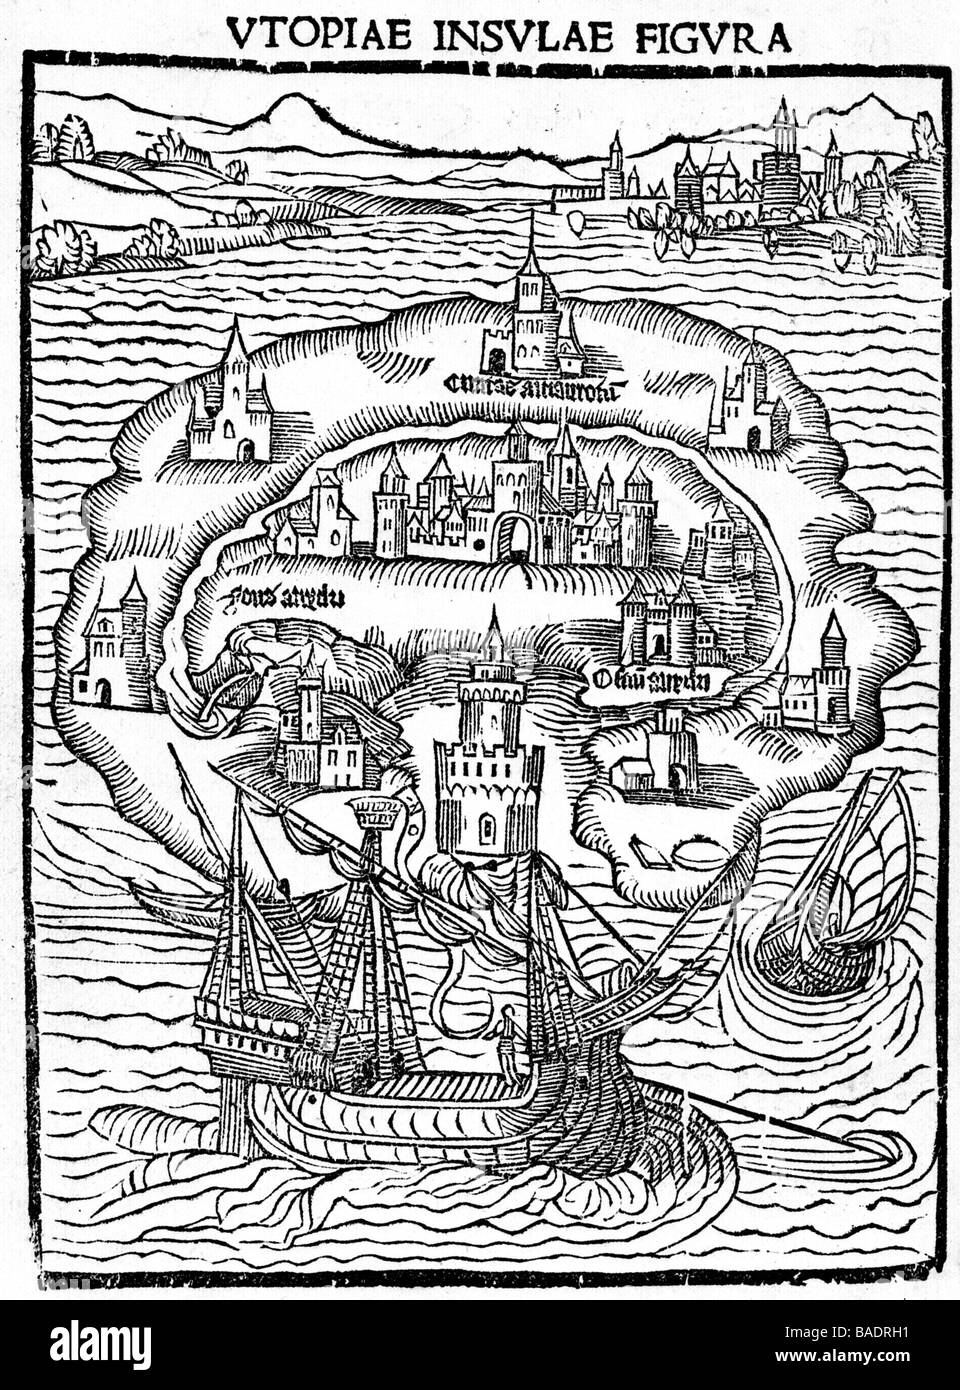 UTOPIA Frontespiece of the 1516 first edition of the book by Sir Thomas Moore - Stock Image